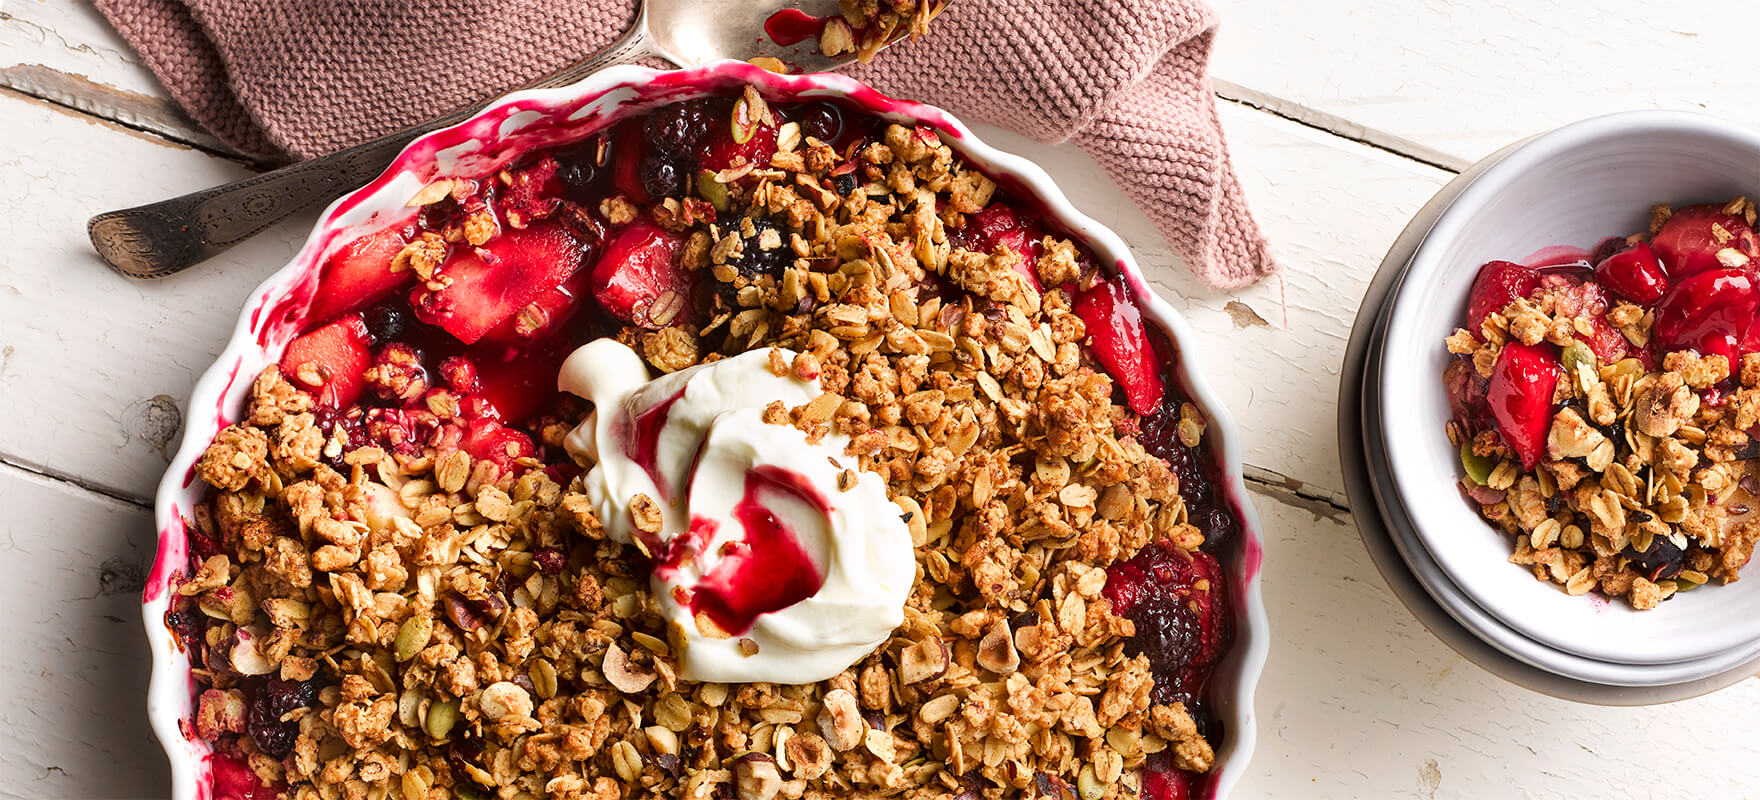 Apple and berry crumble image 1